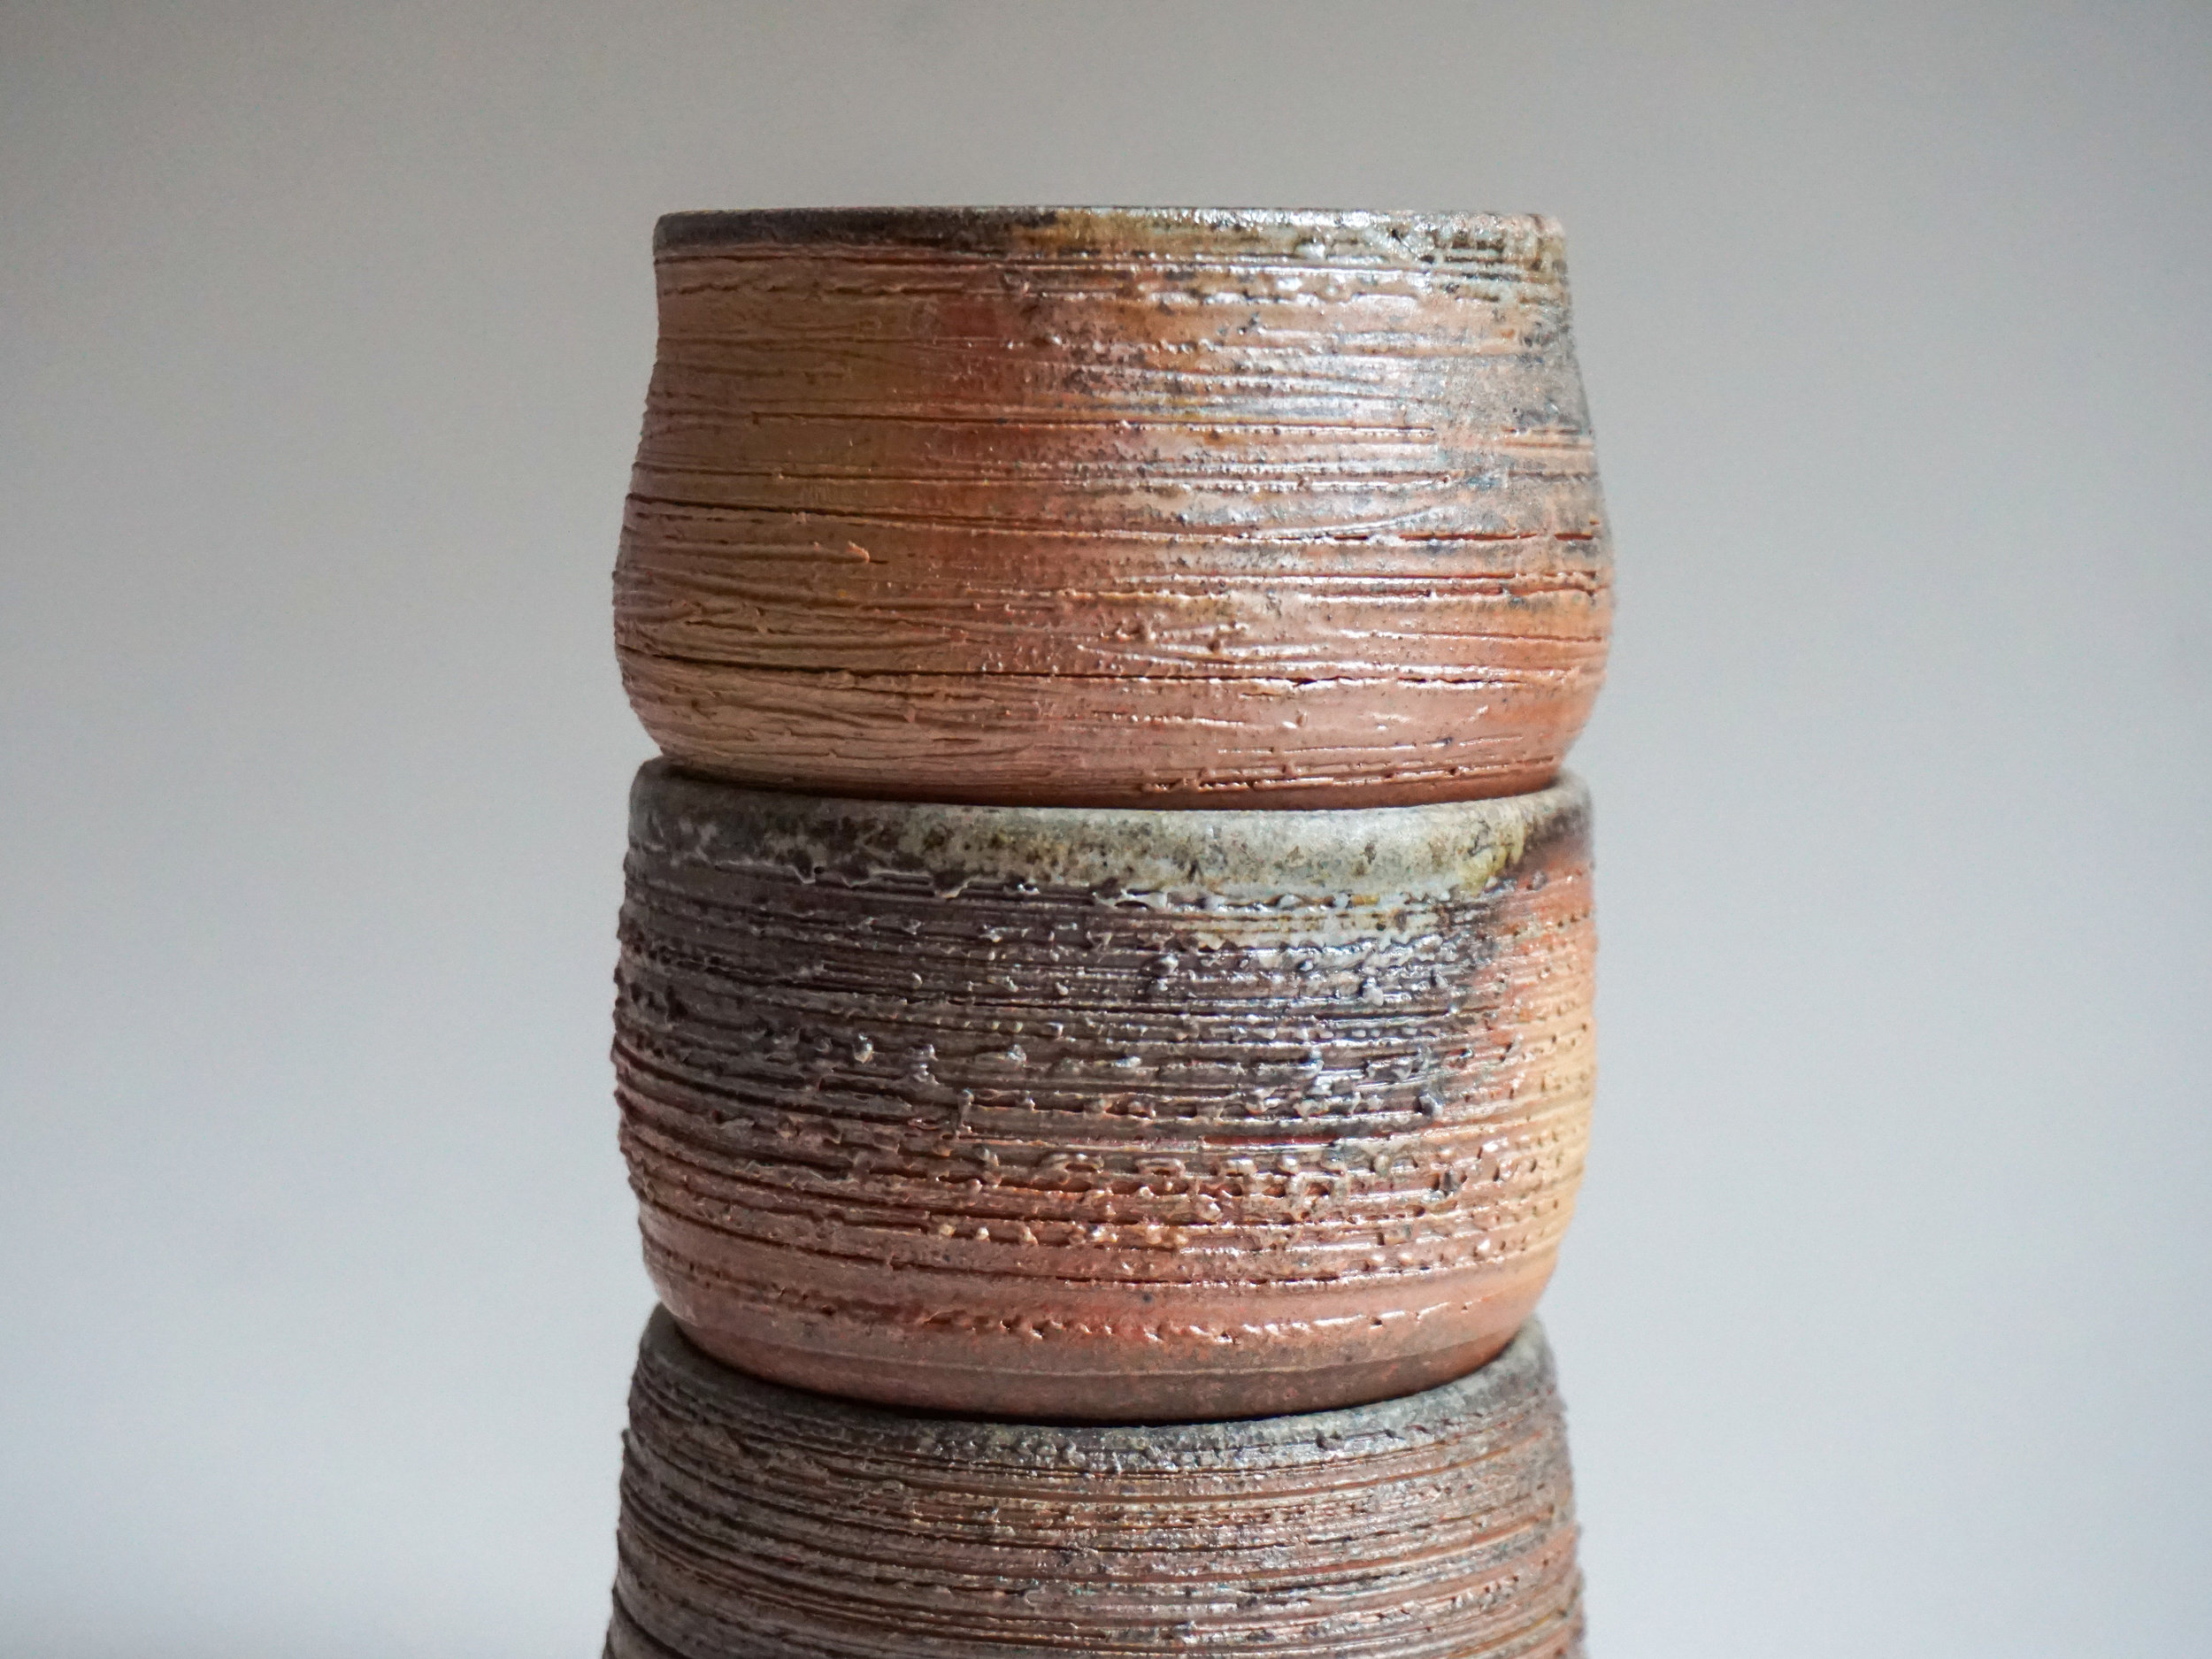 wood fired 3 cups